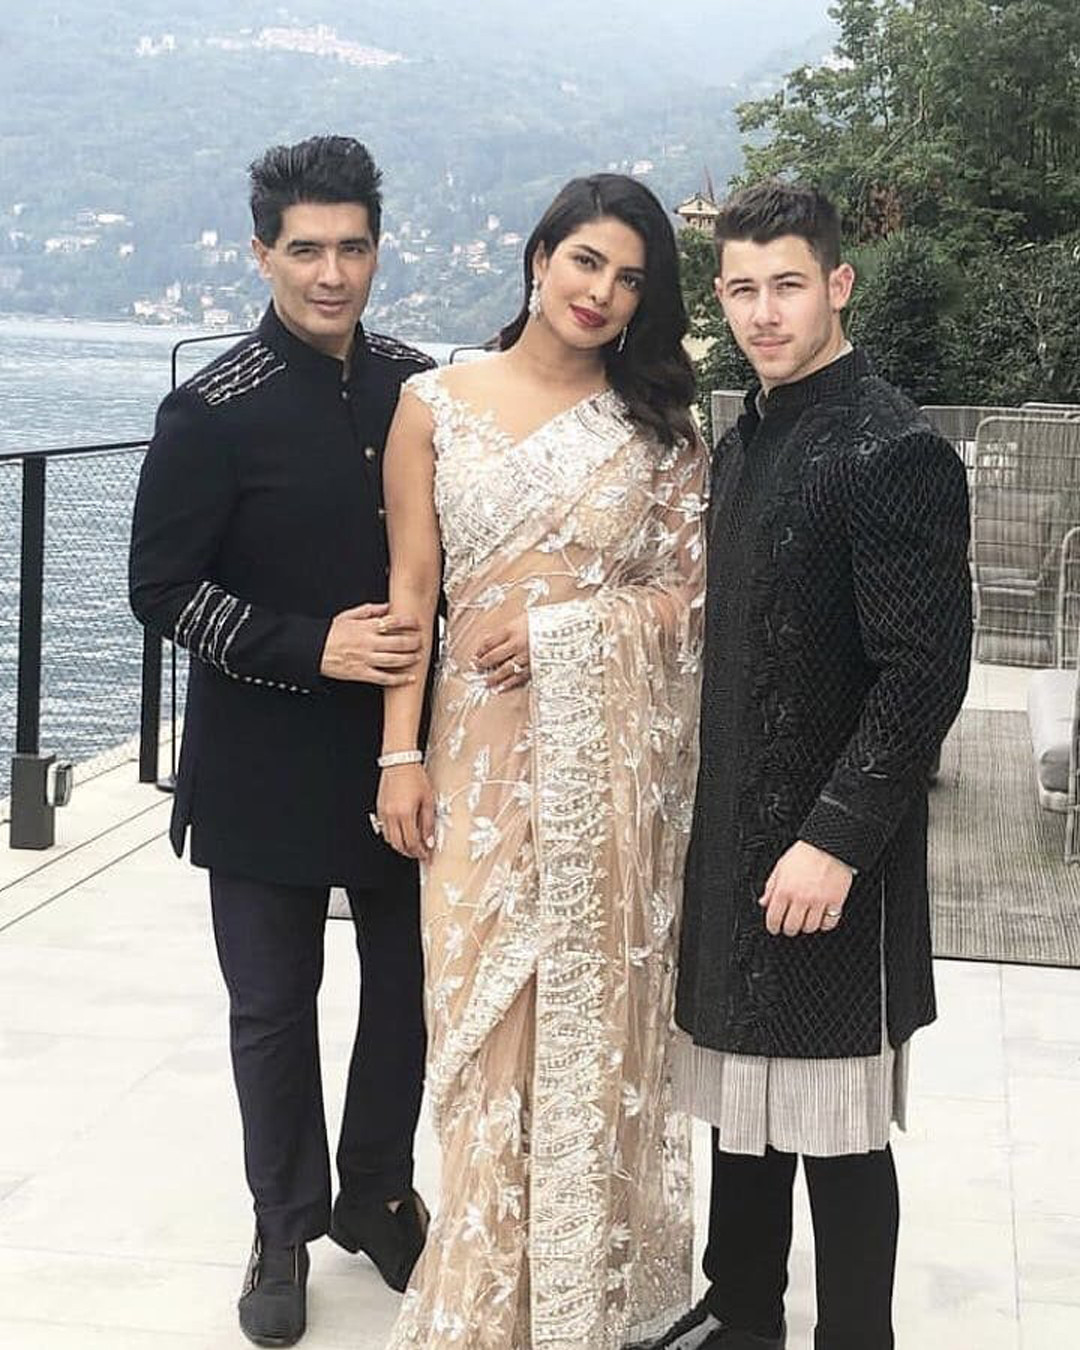 Nick Jonas And Priyanka Chopra Don Traditional Indian Ensembles In